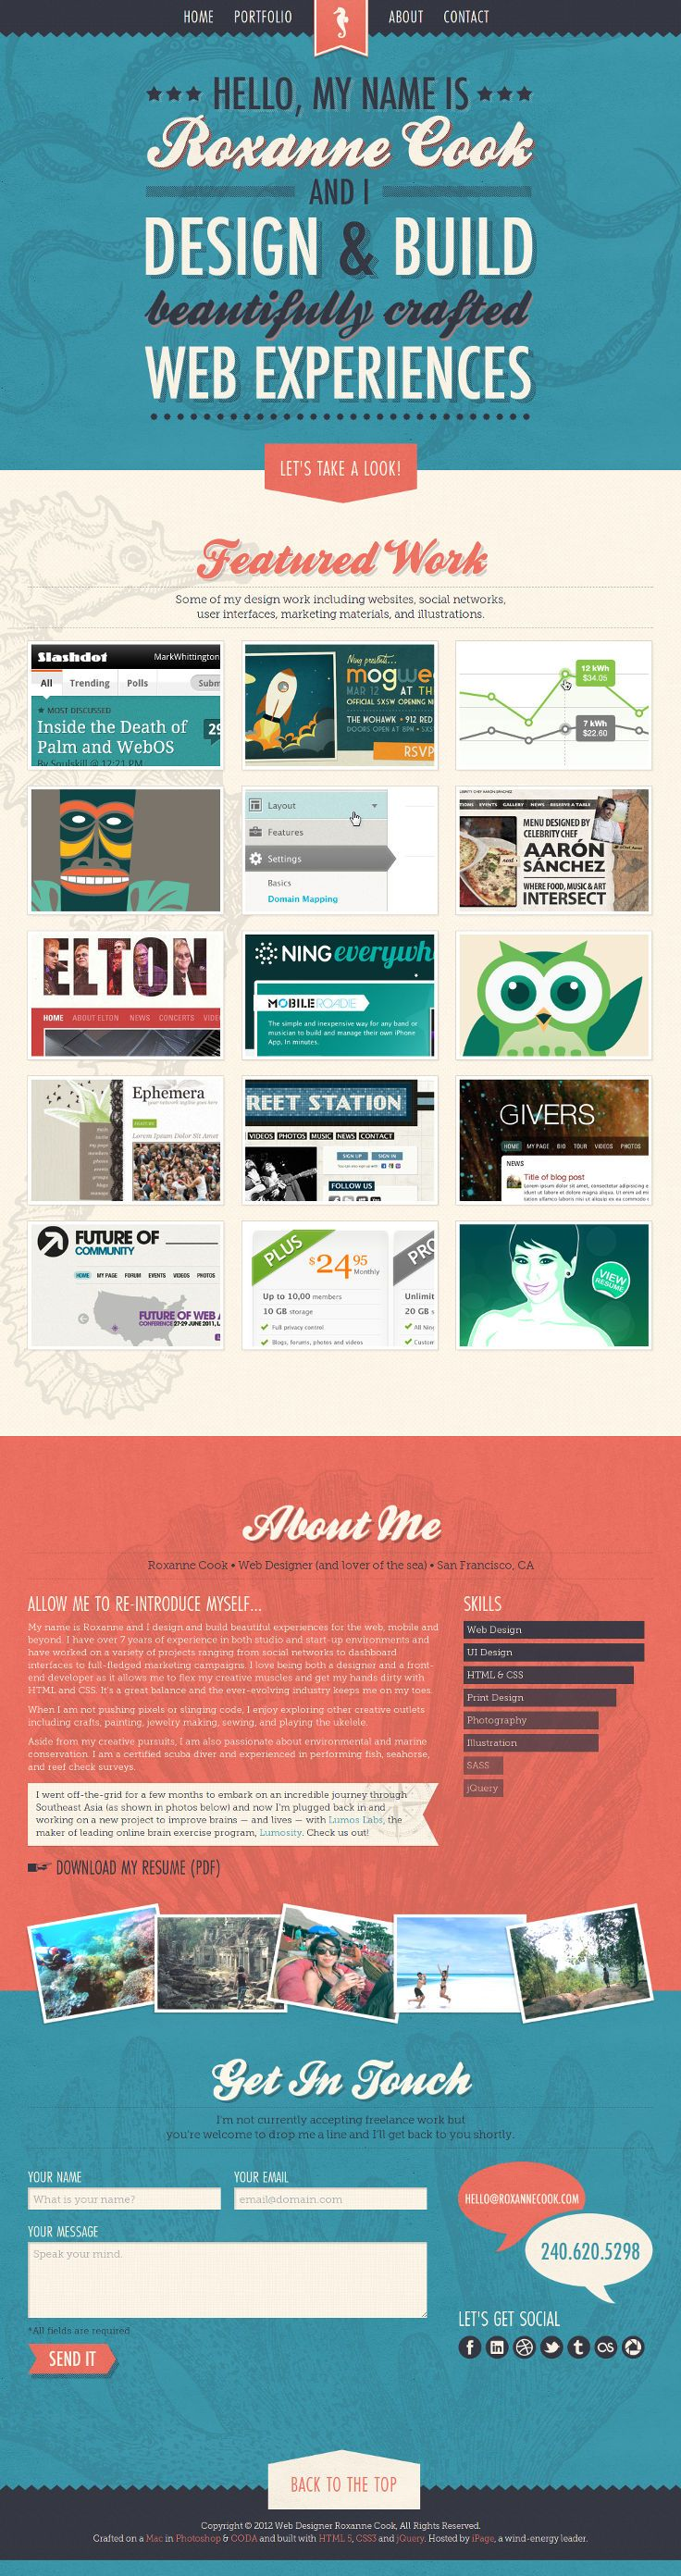 best images about portfolio cv inspiratie want to have your own unique web portfolio go to